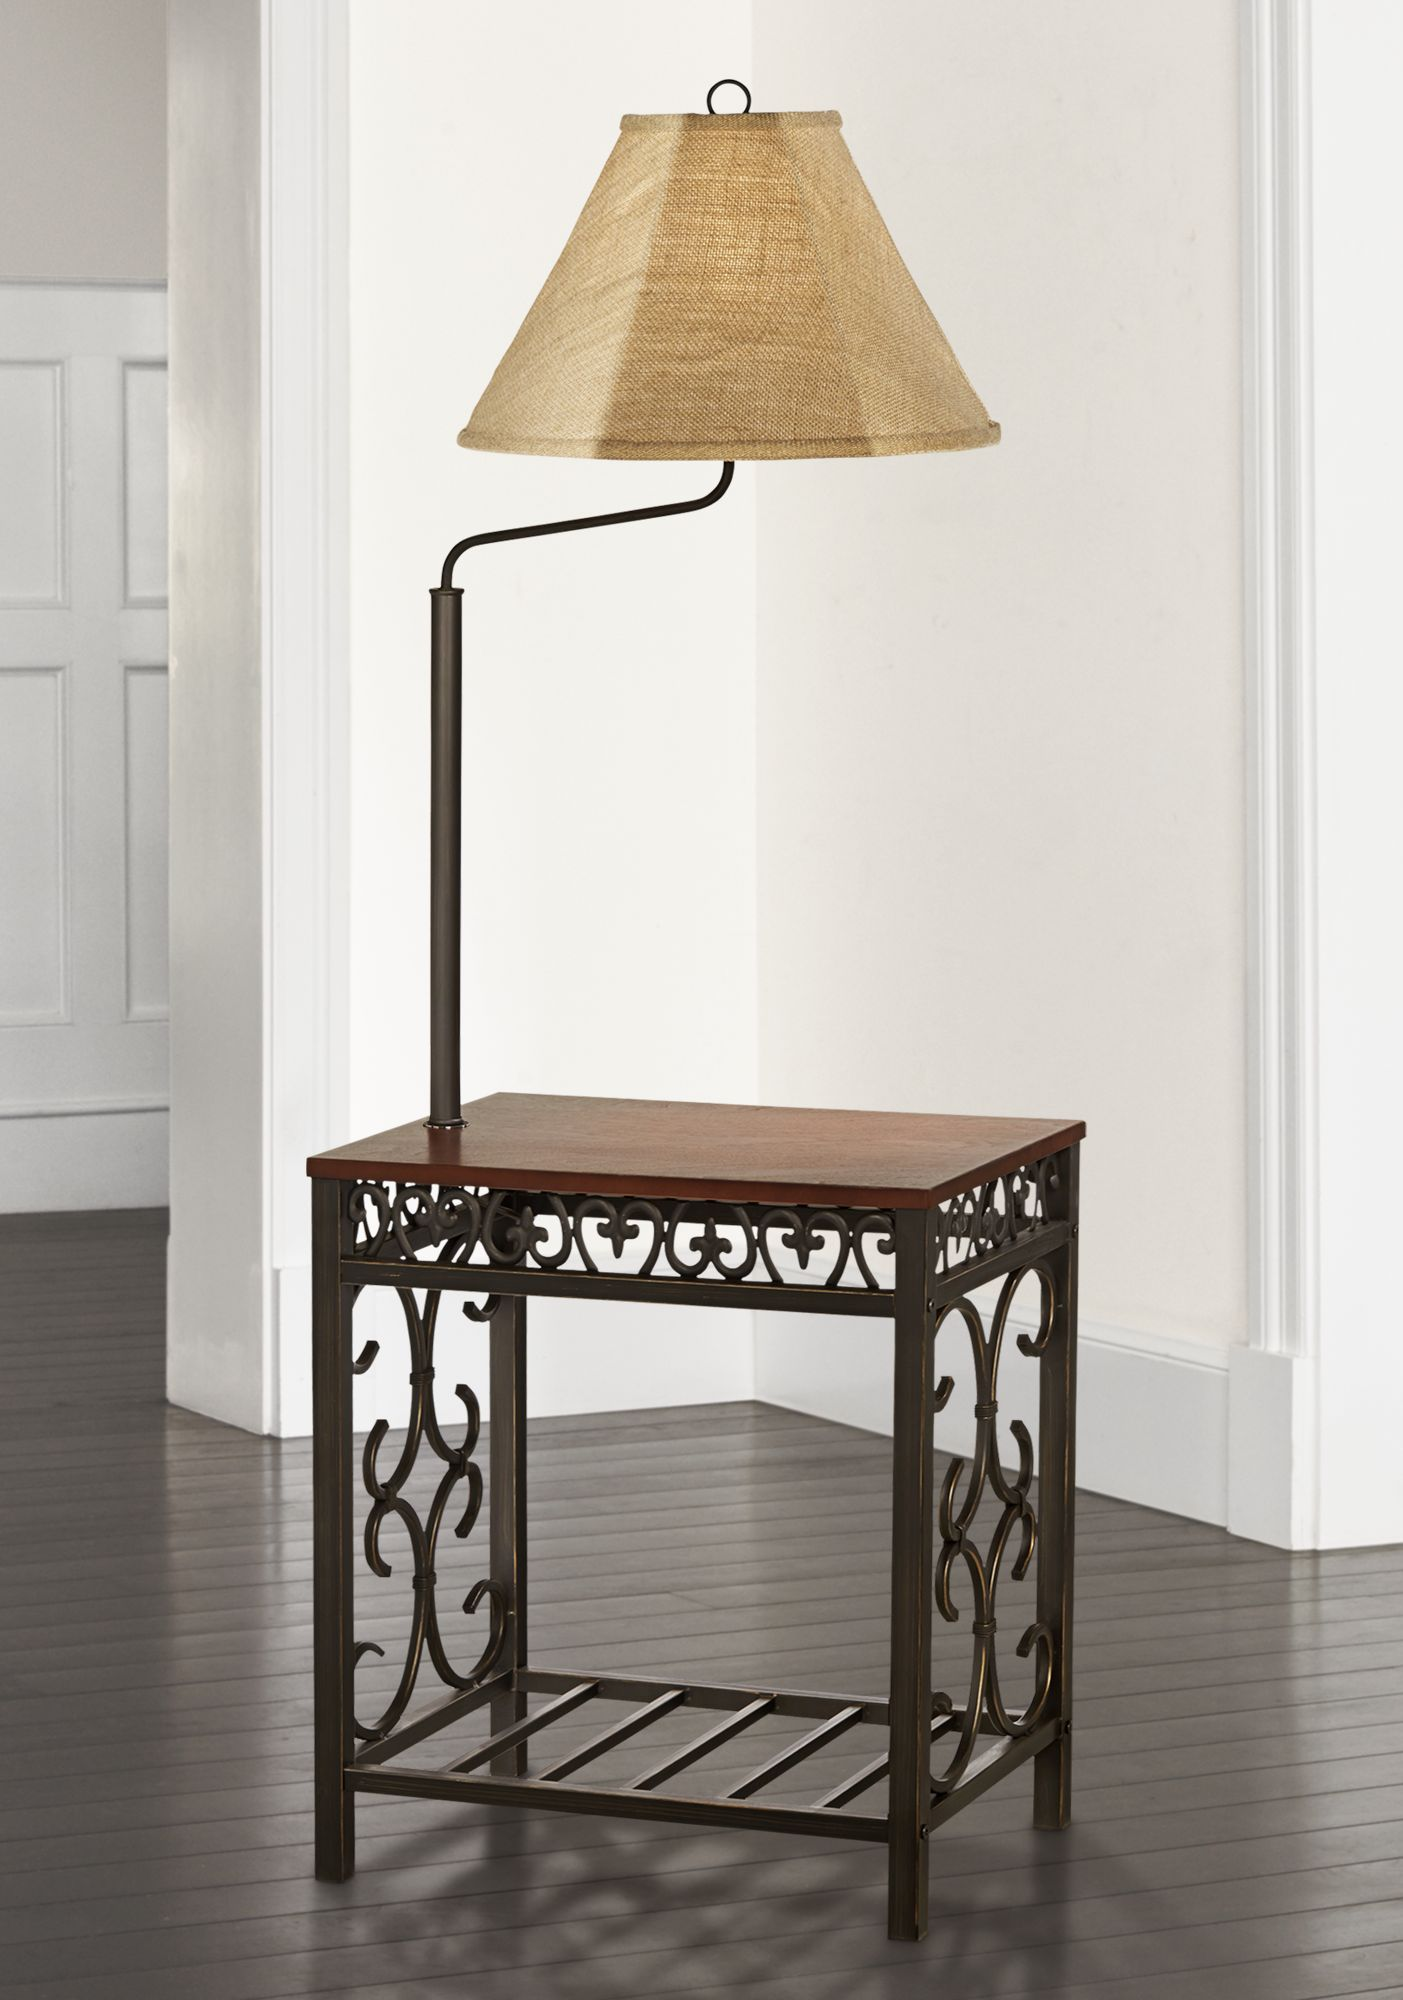 Traditional, Swing Arm Floor Lamps